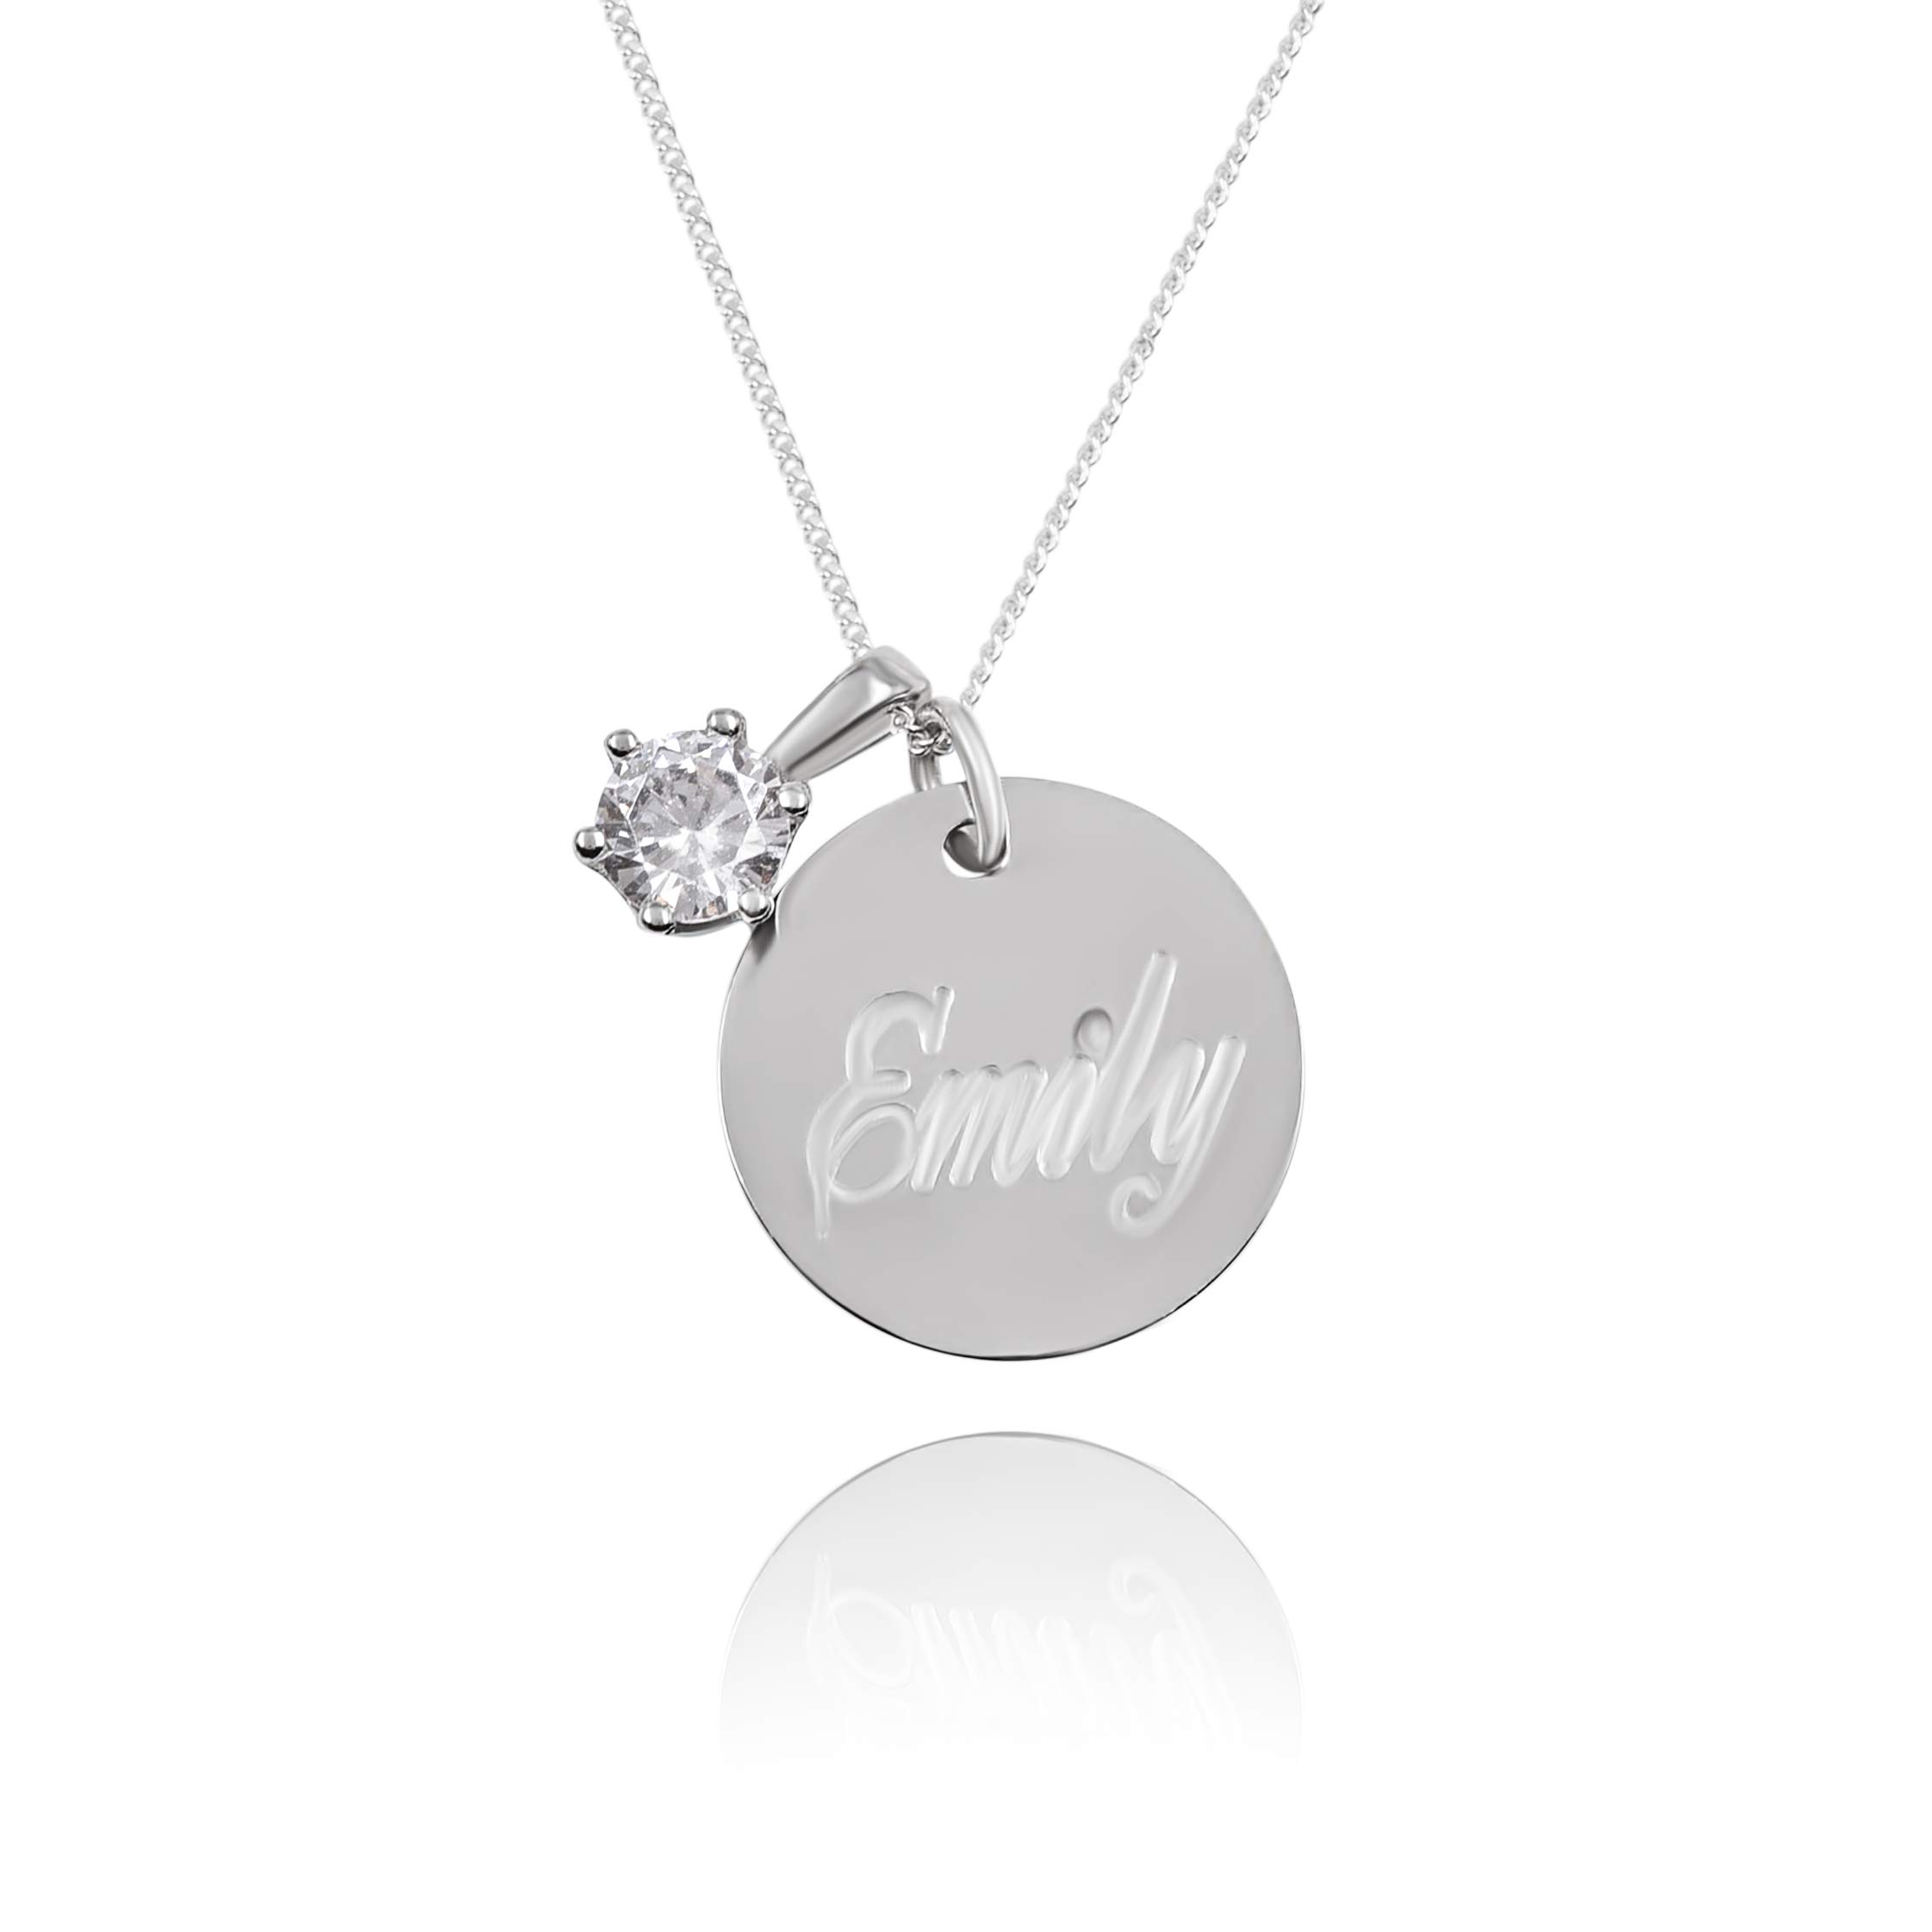 Sterling Silver Engraved Name Necklace with CZ, Personalized Disc Necklace- Custom Engraved Jewelry Gift for Her